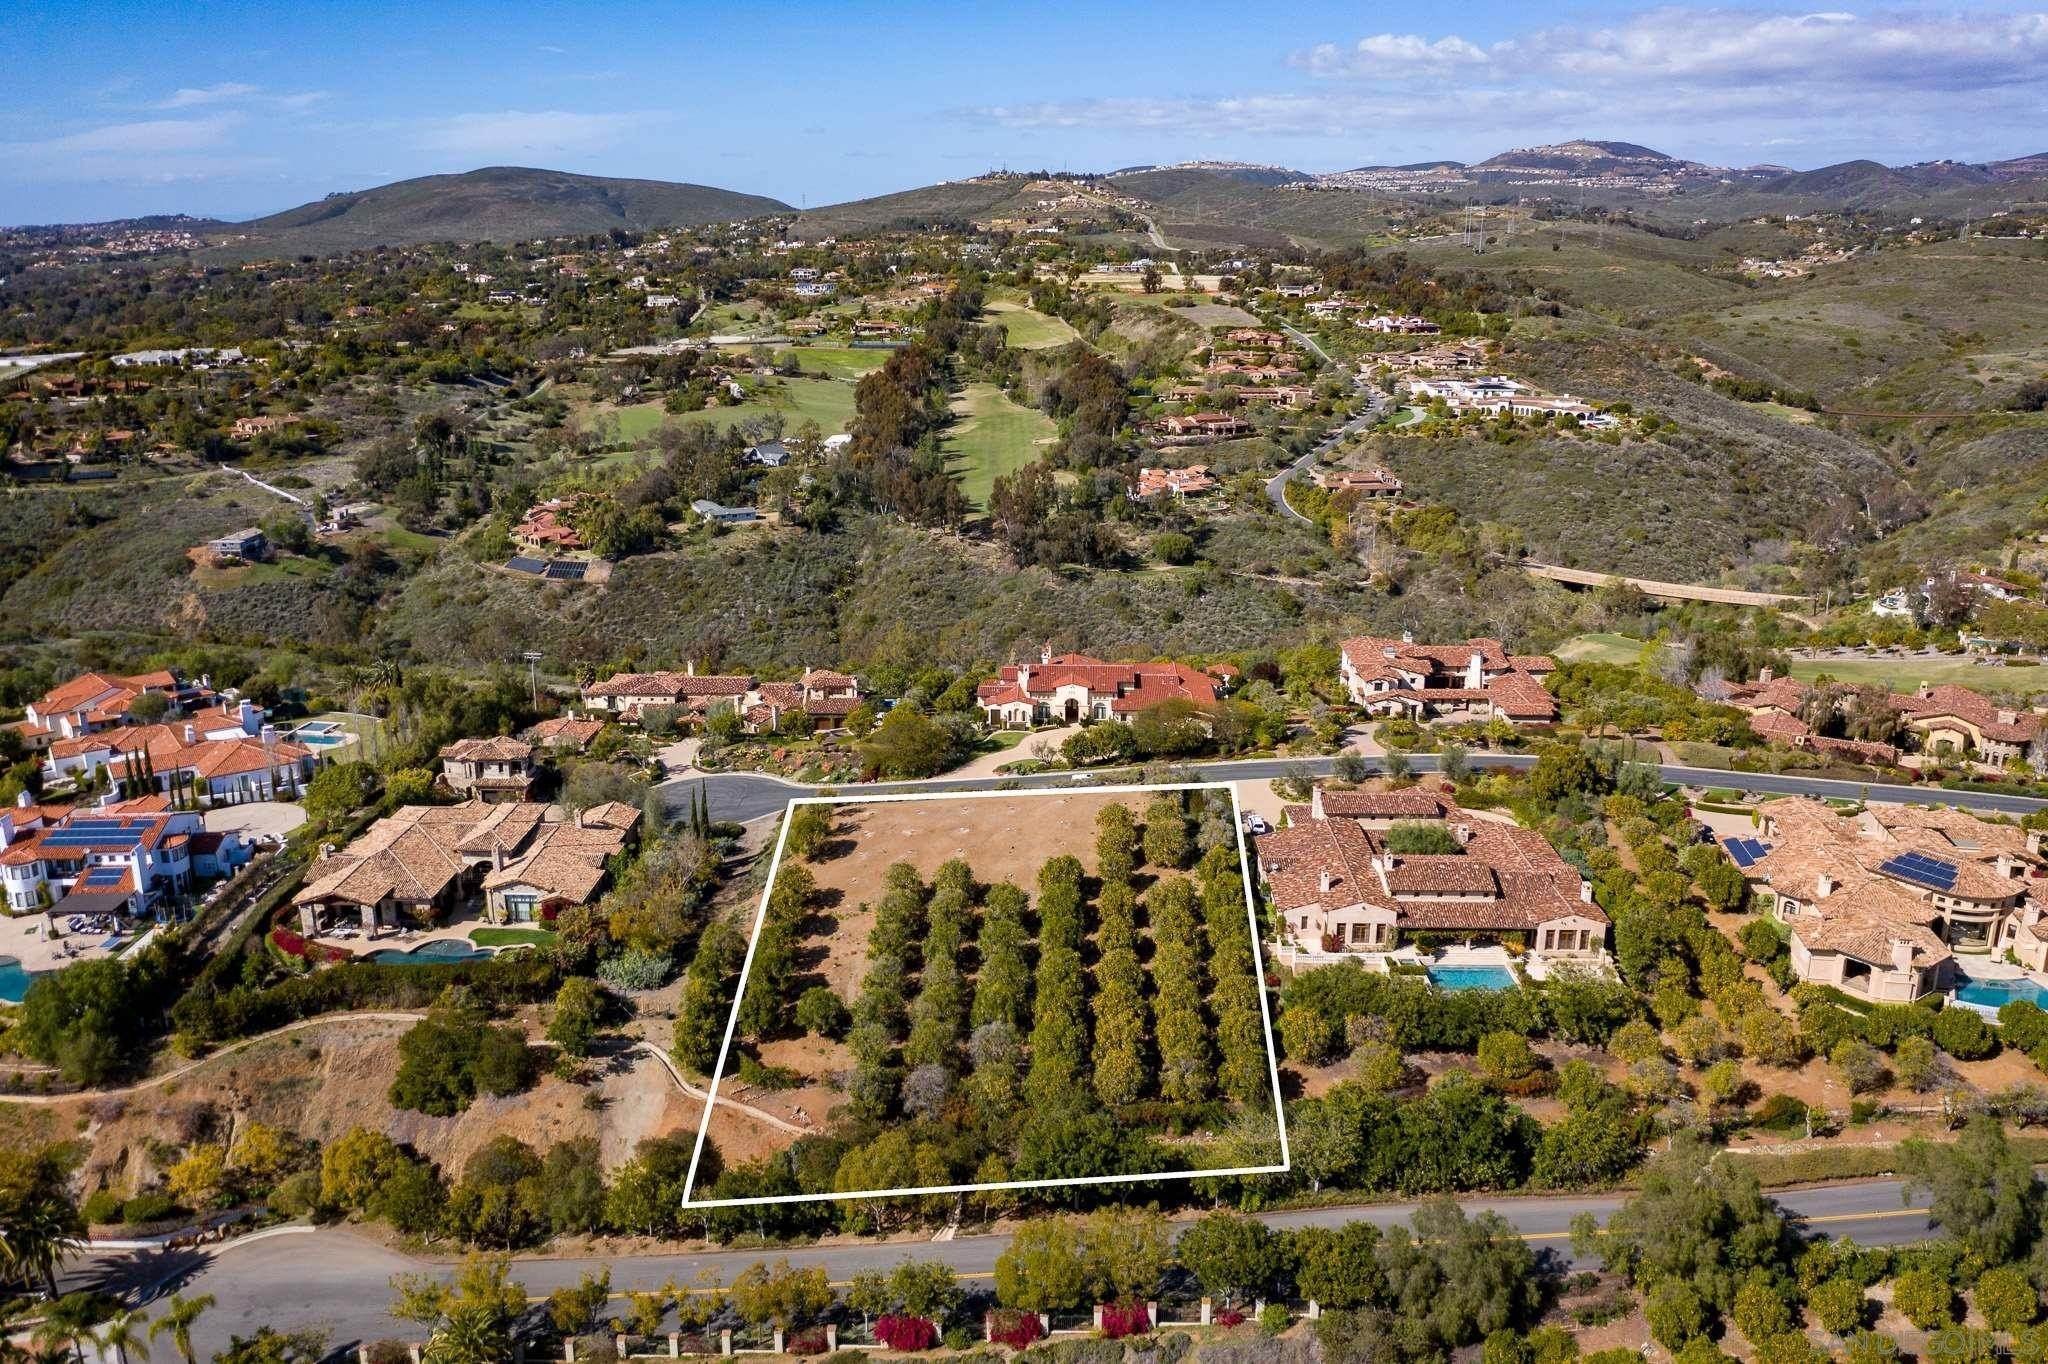 Land / Lots for Sale at 6241 Strada Fragante Rancho Santa Fe, California 92091 United States